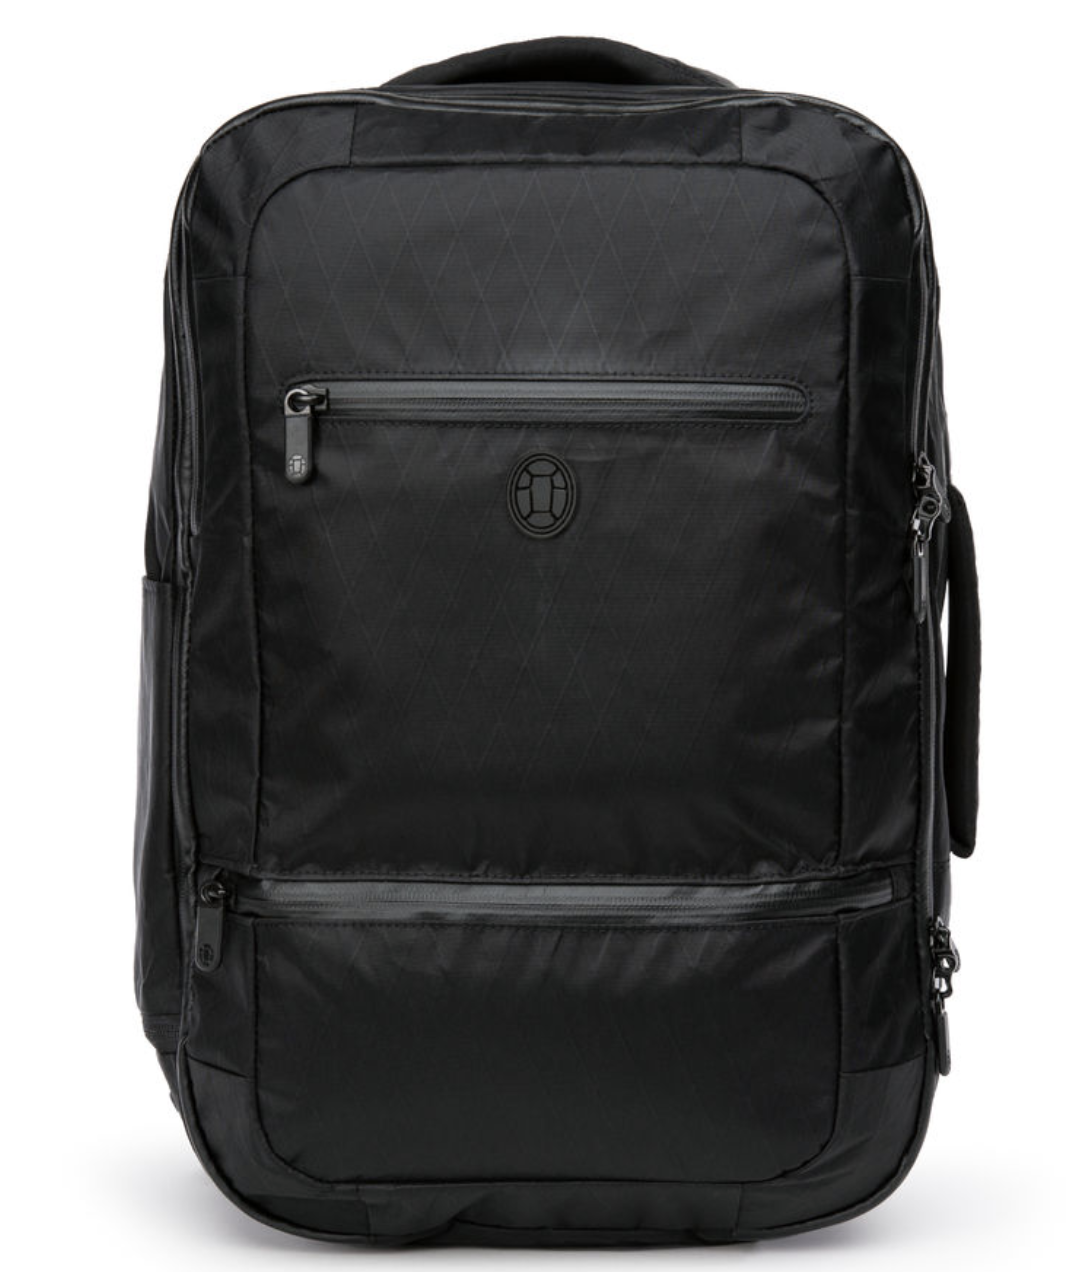 totuga laptop backpack review